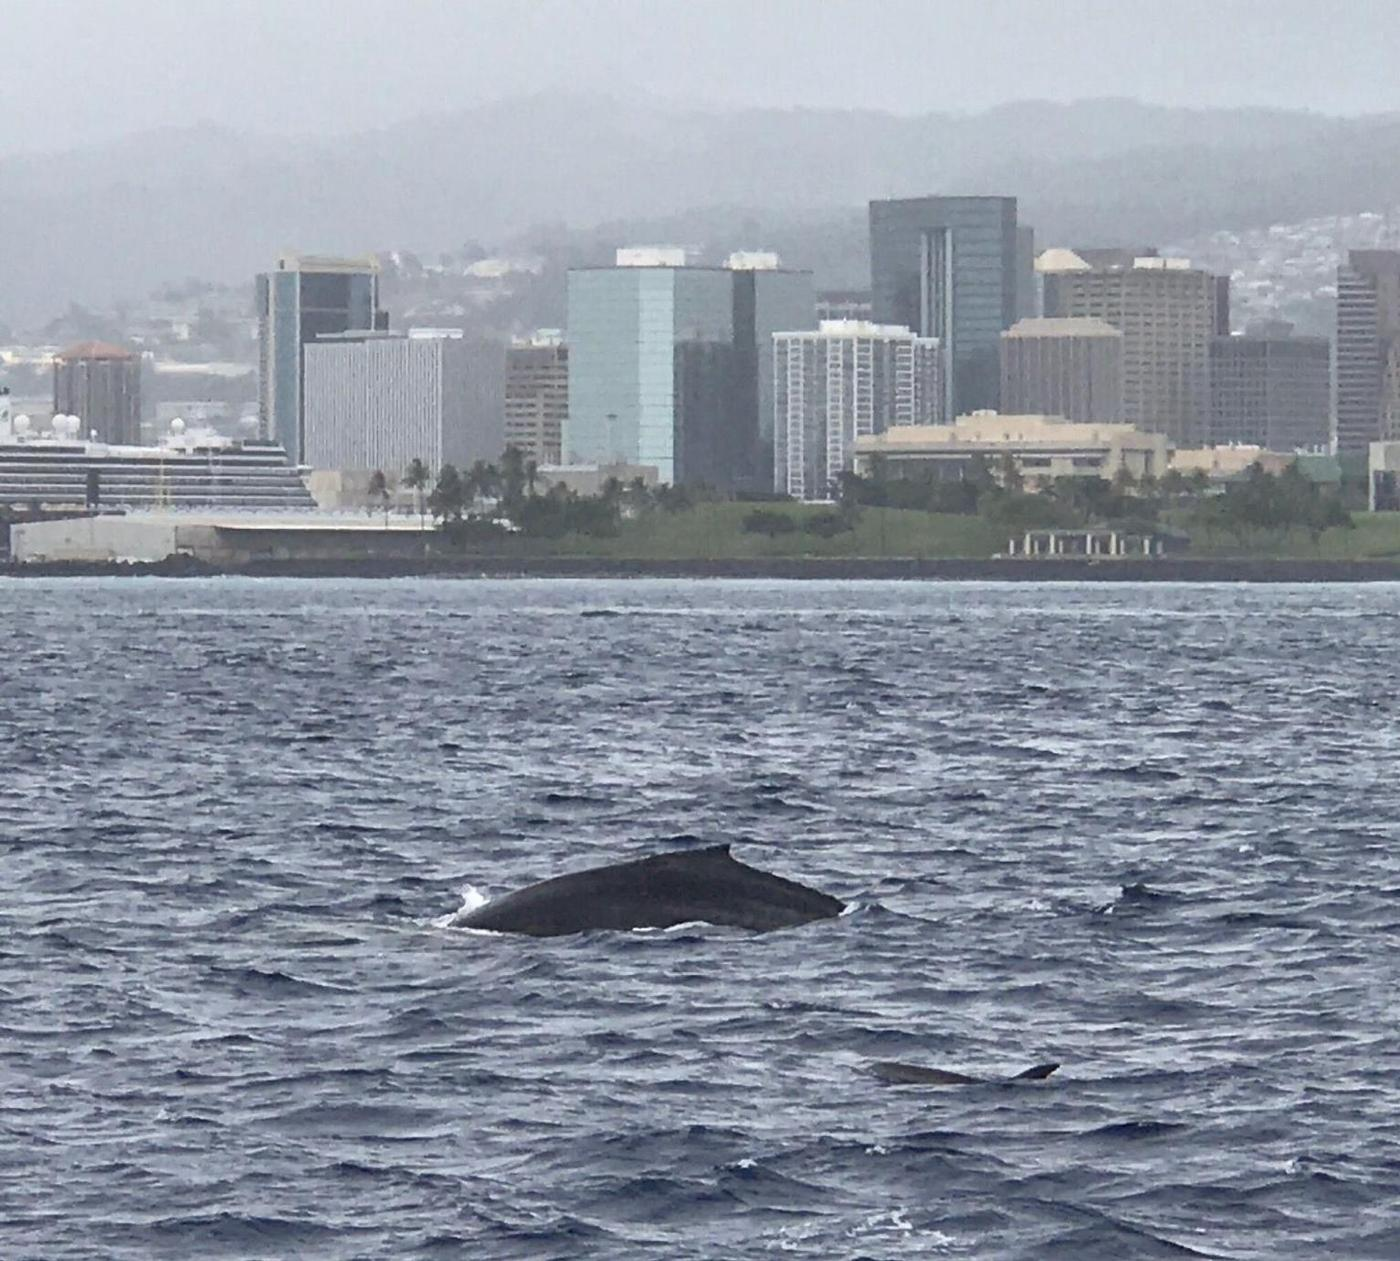 Enjoy incredible views of humpback whales from a 60-foot-high observation deck!